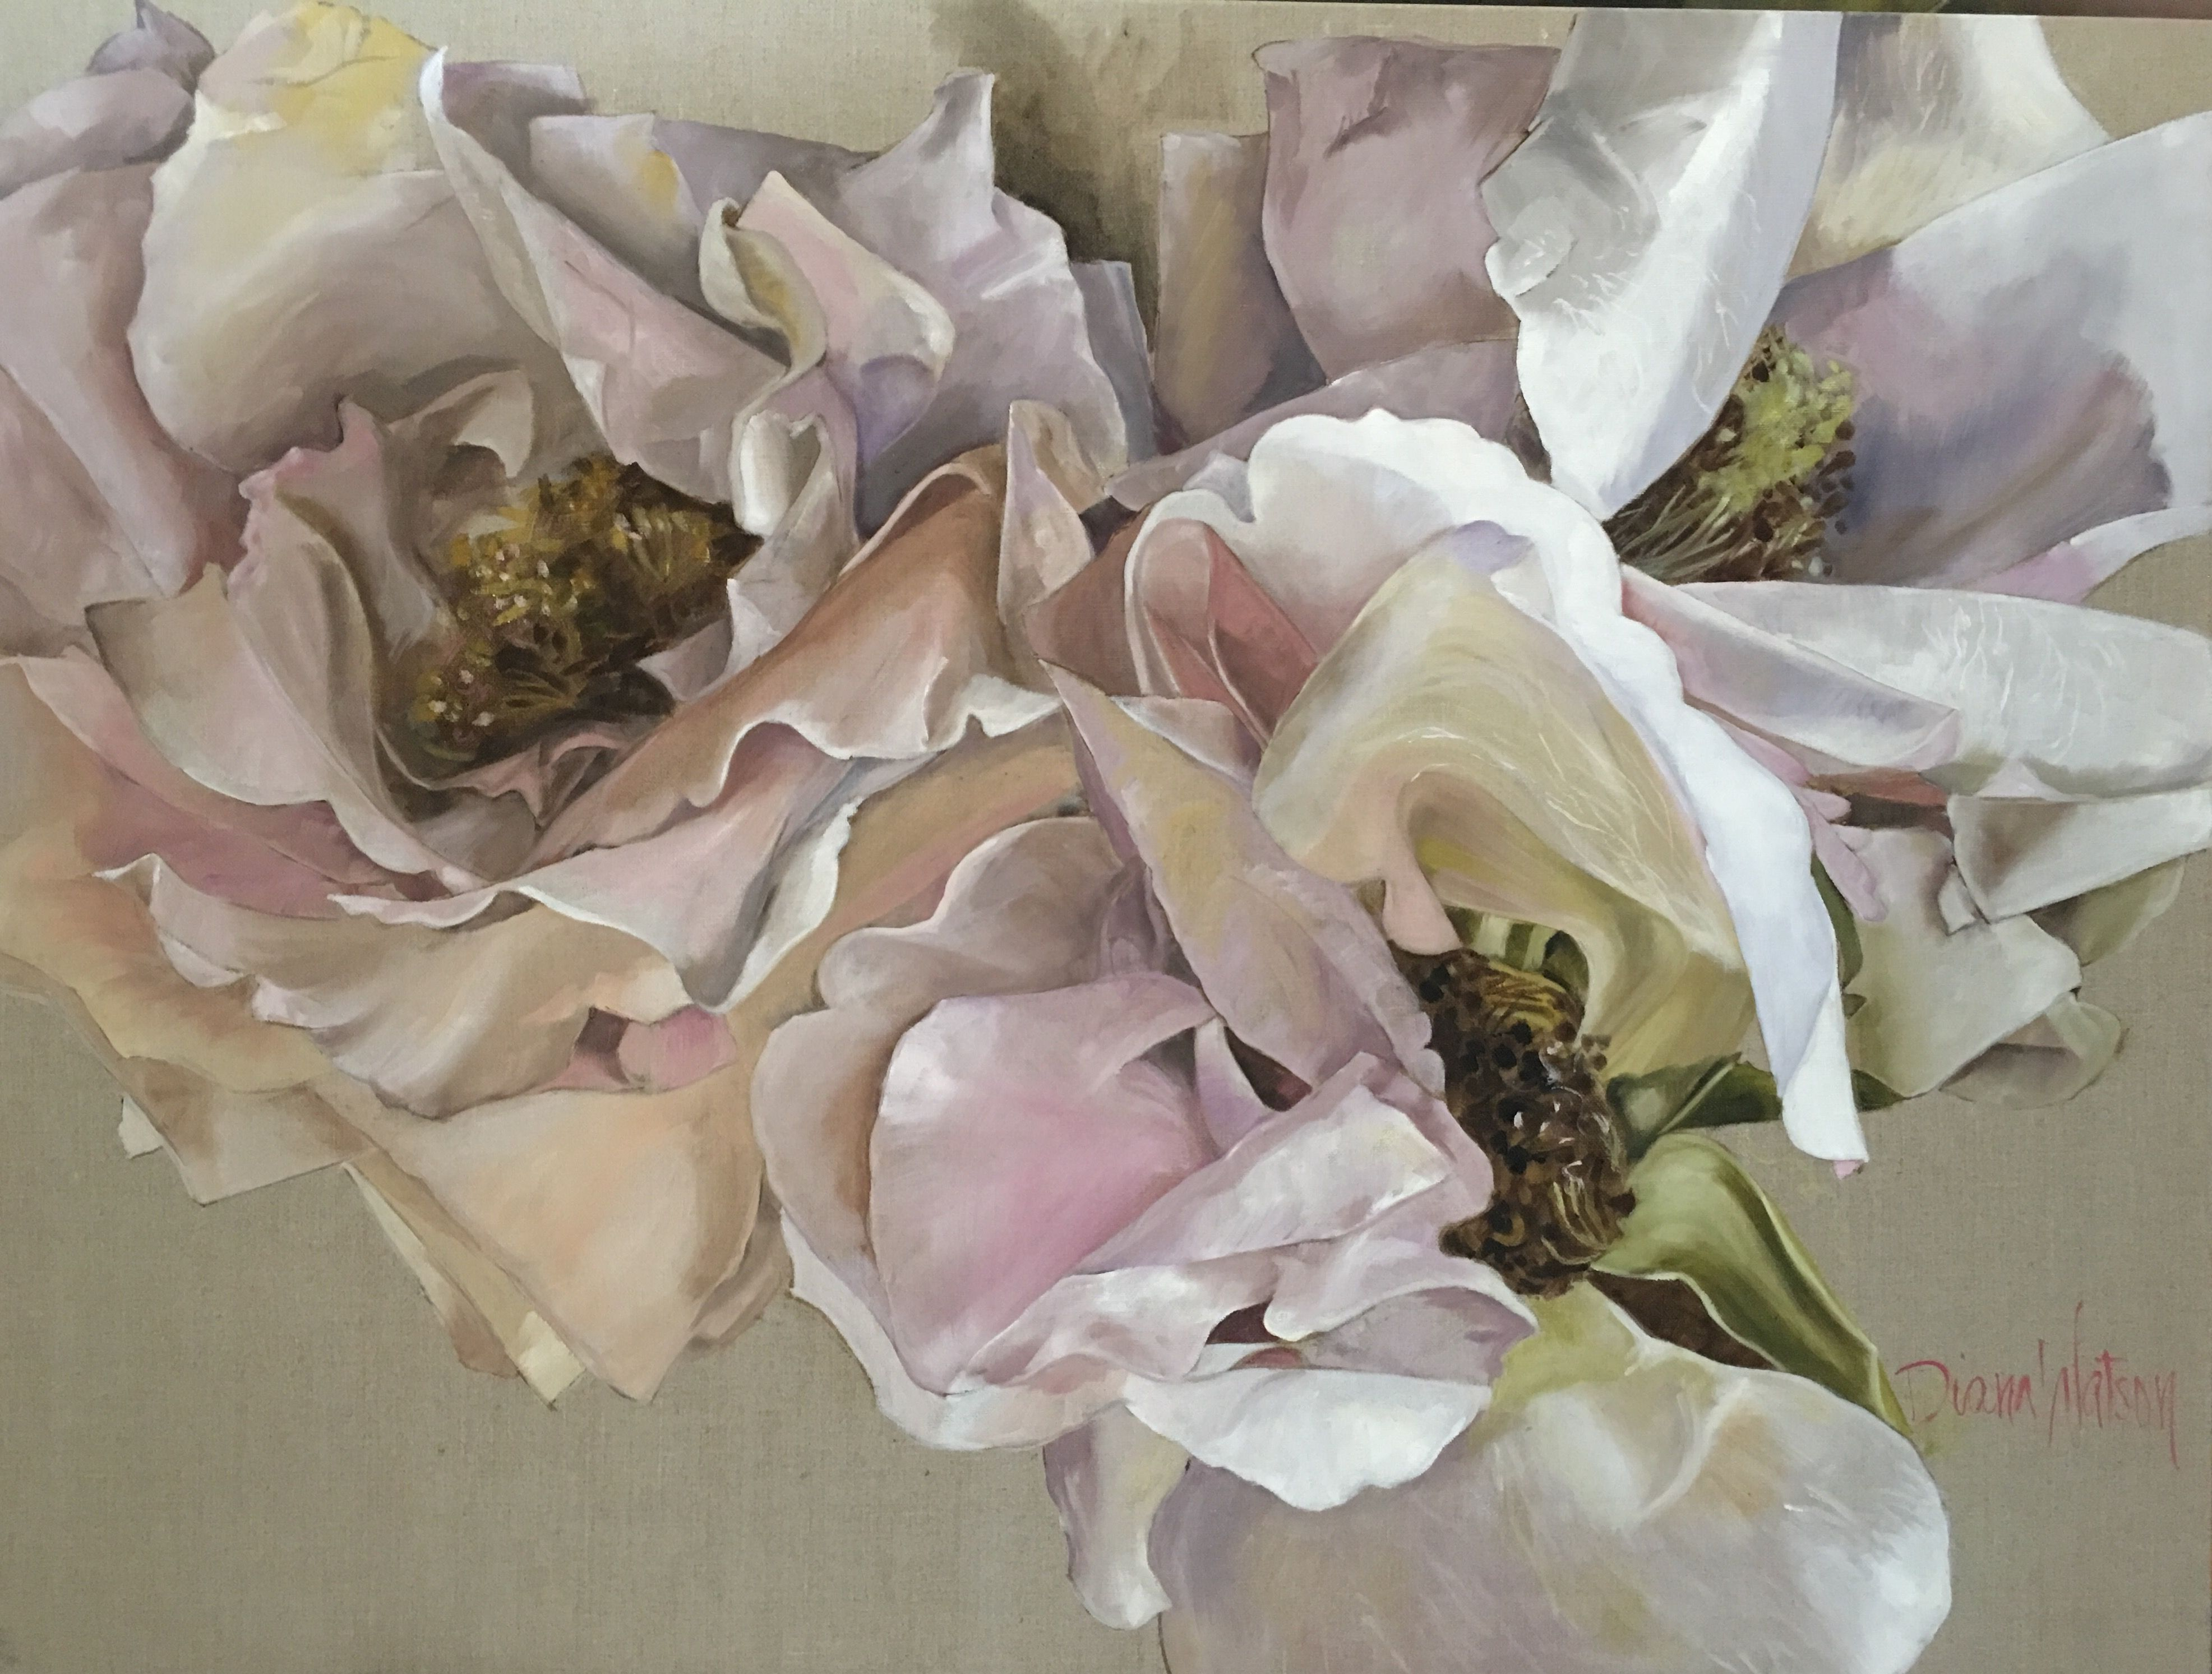 Pin By Diana Watson On Christmas: Diana Watson Painting LOST IN THE GARDEN 92x122